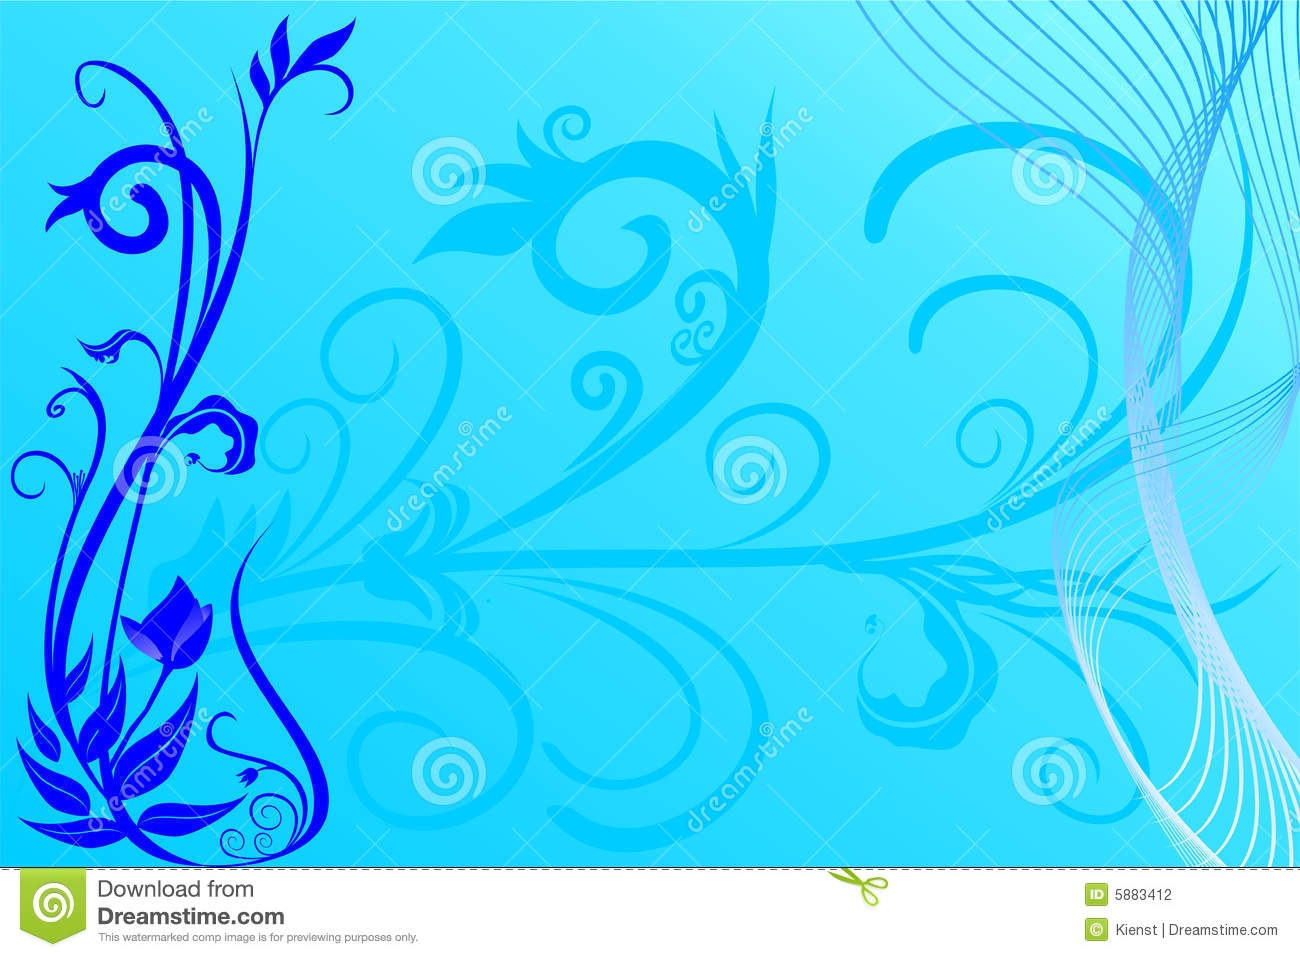 Blue flower background stock vector. Image of fashion